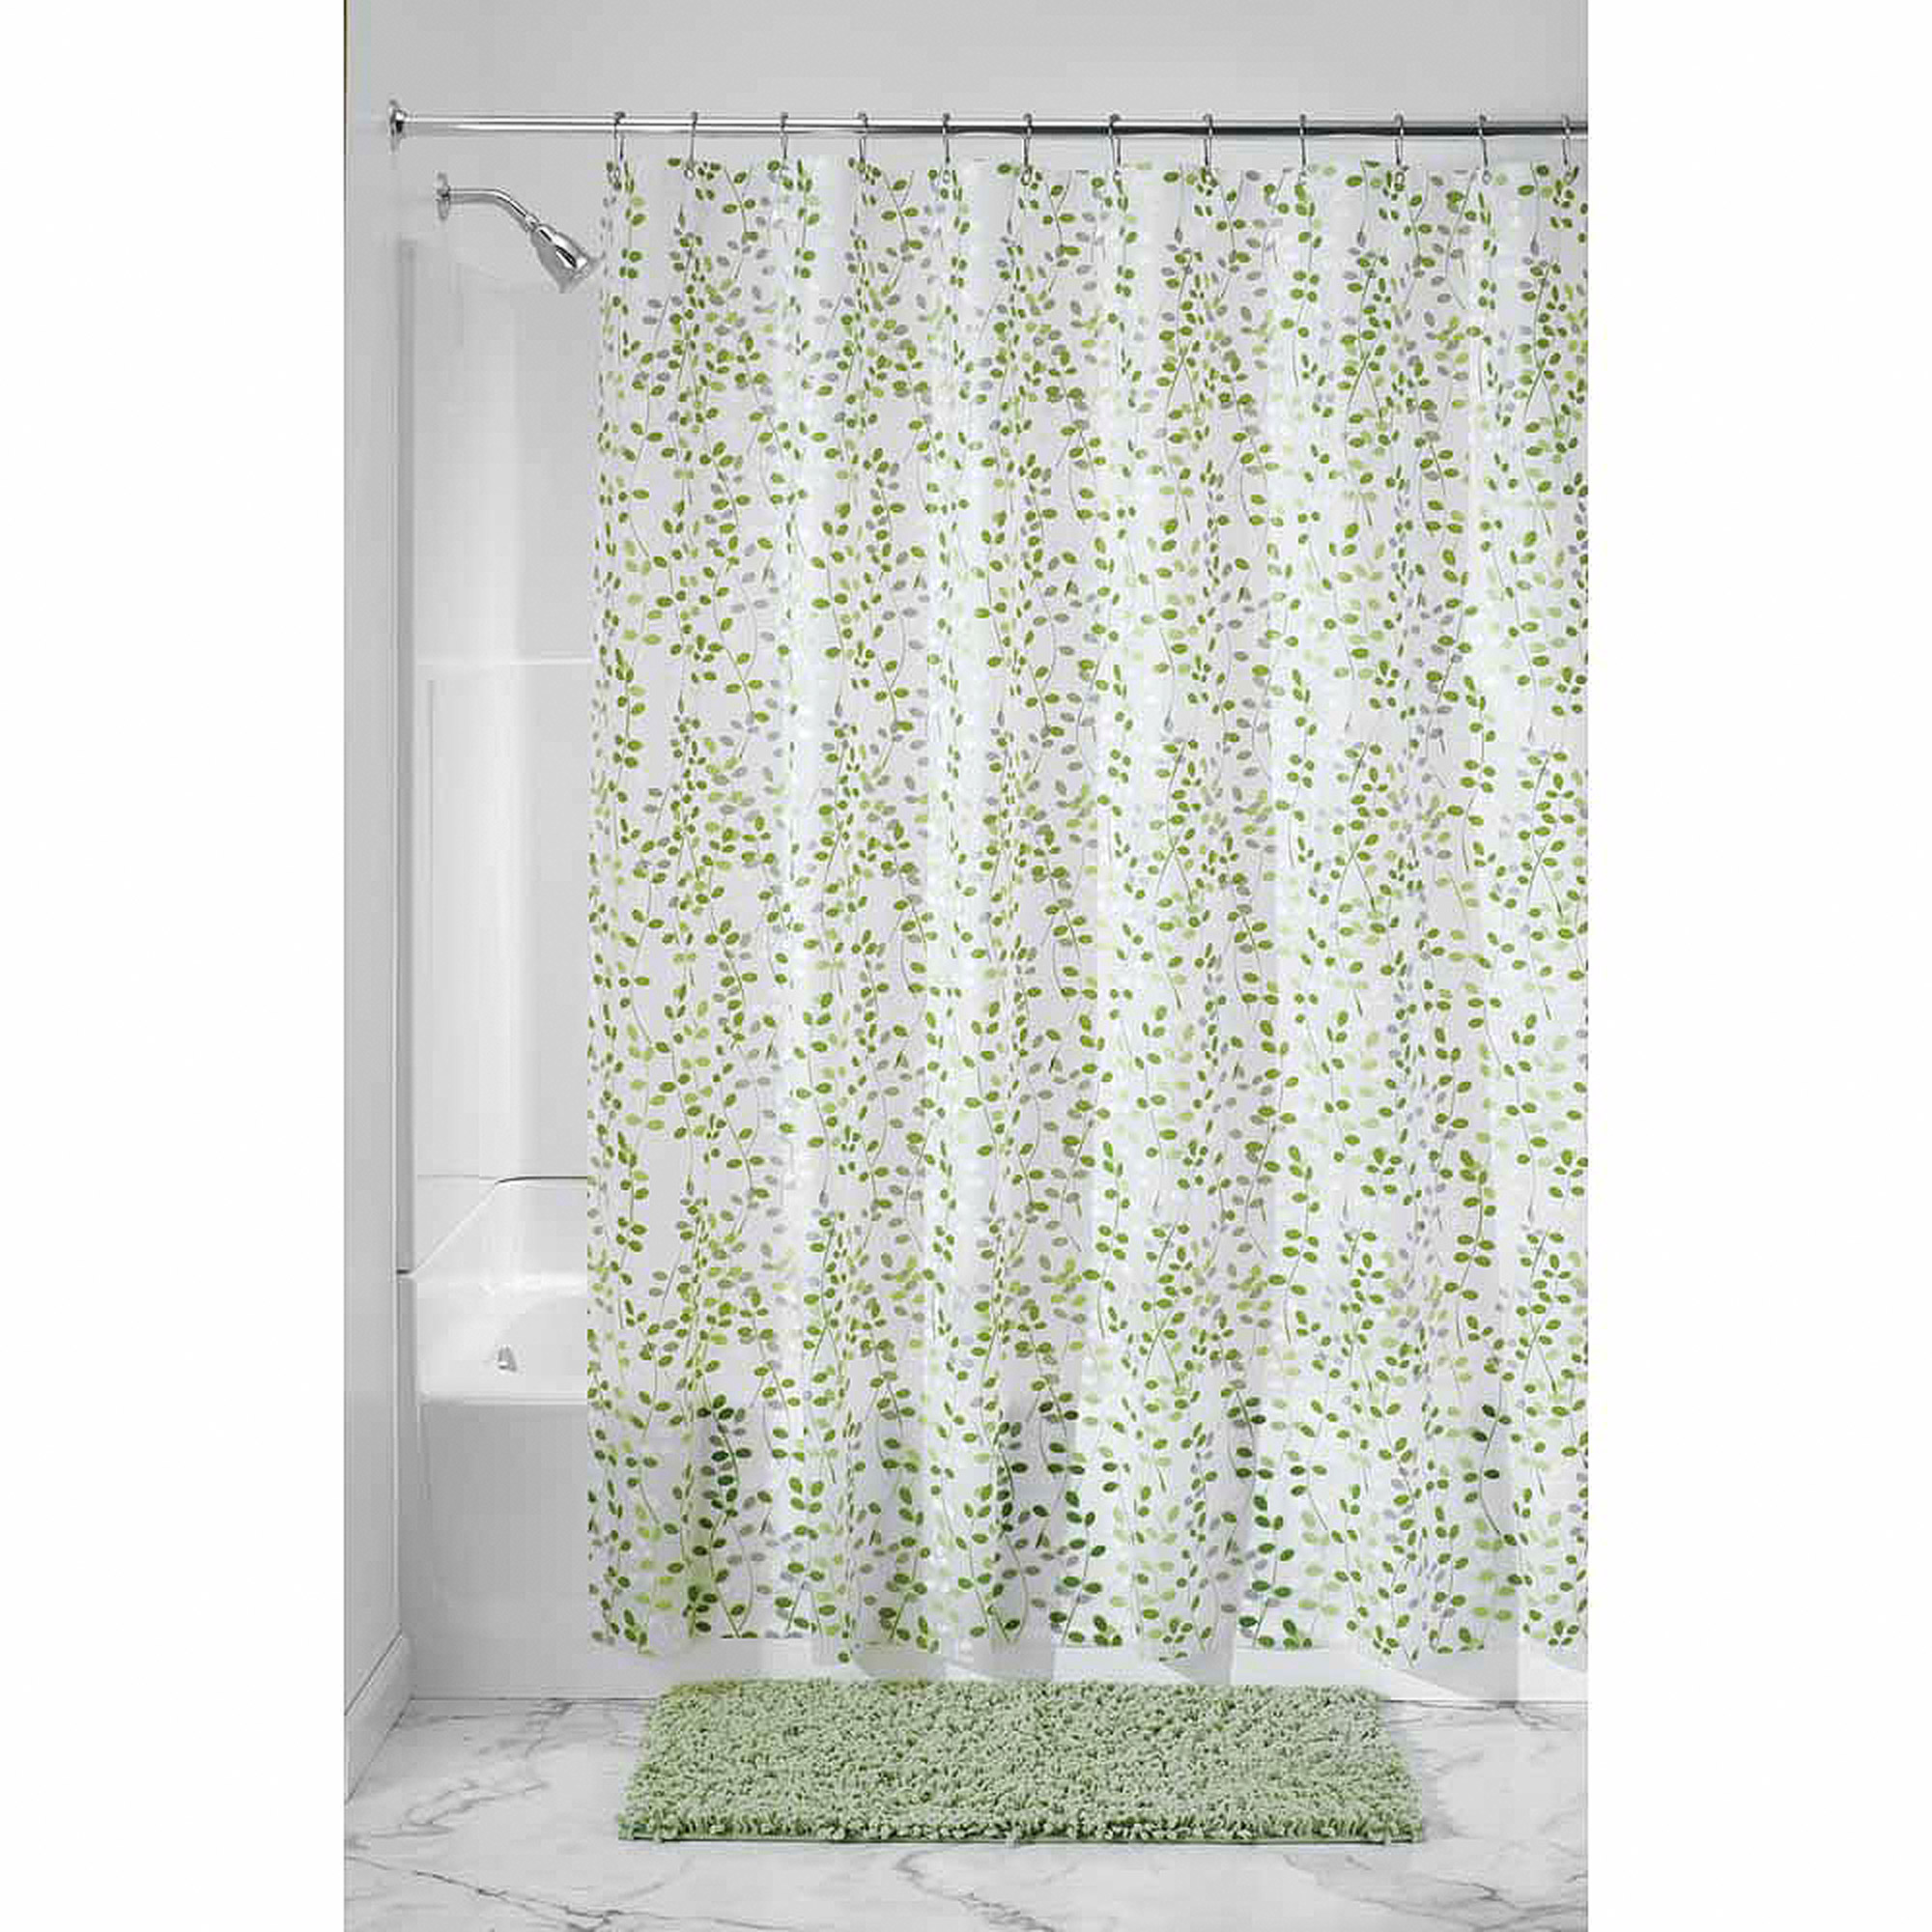 "InterDesign Vine Shower Curtain, 72"" x 72"", Green/White"